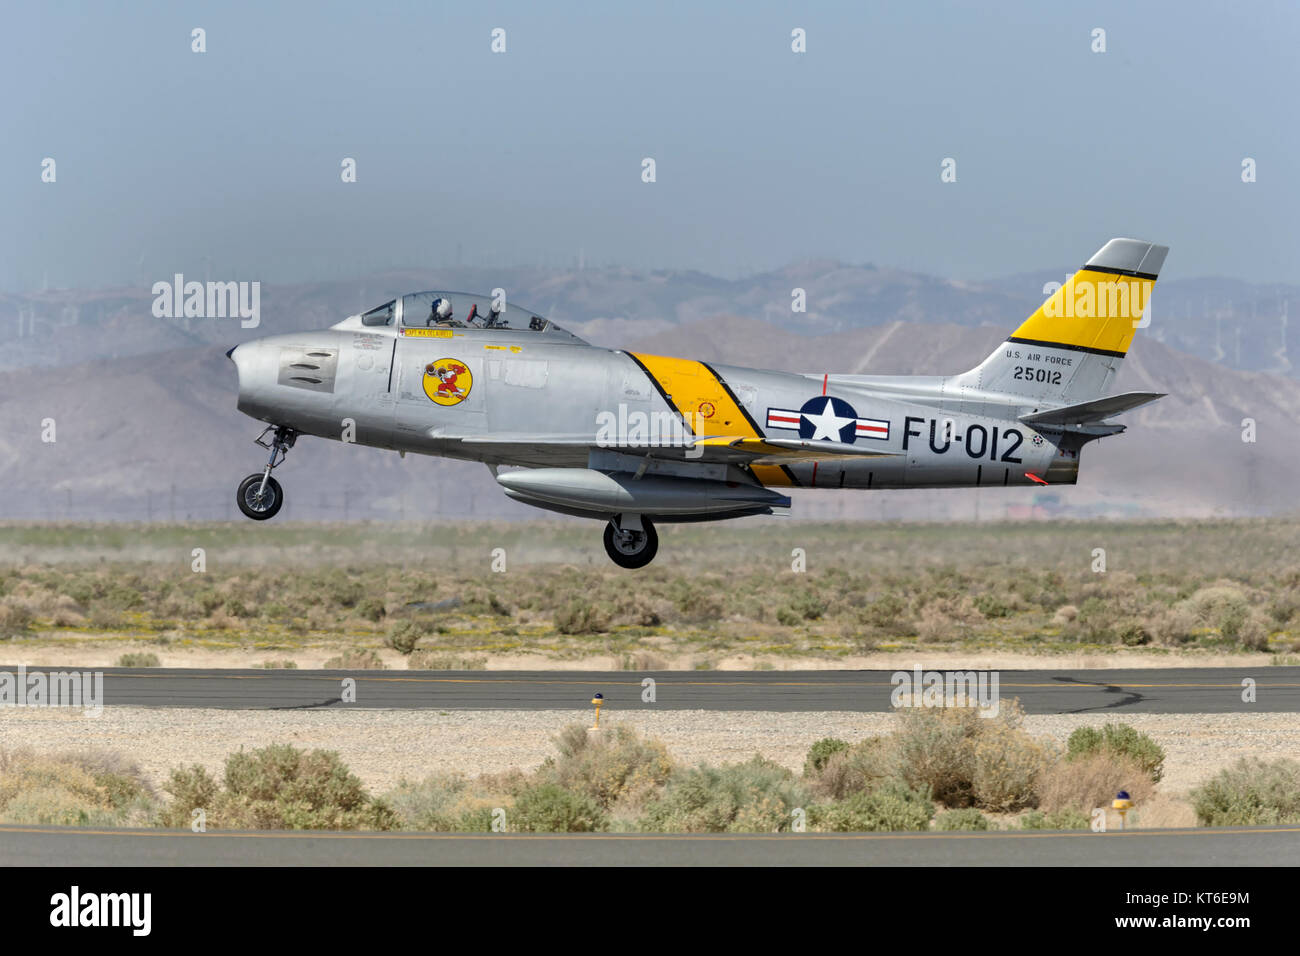 North American F86 Sabre - Stock Image